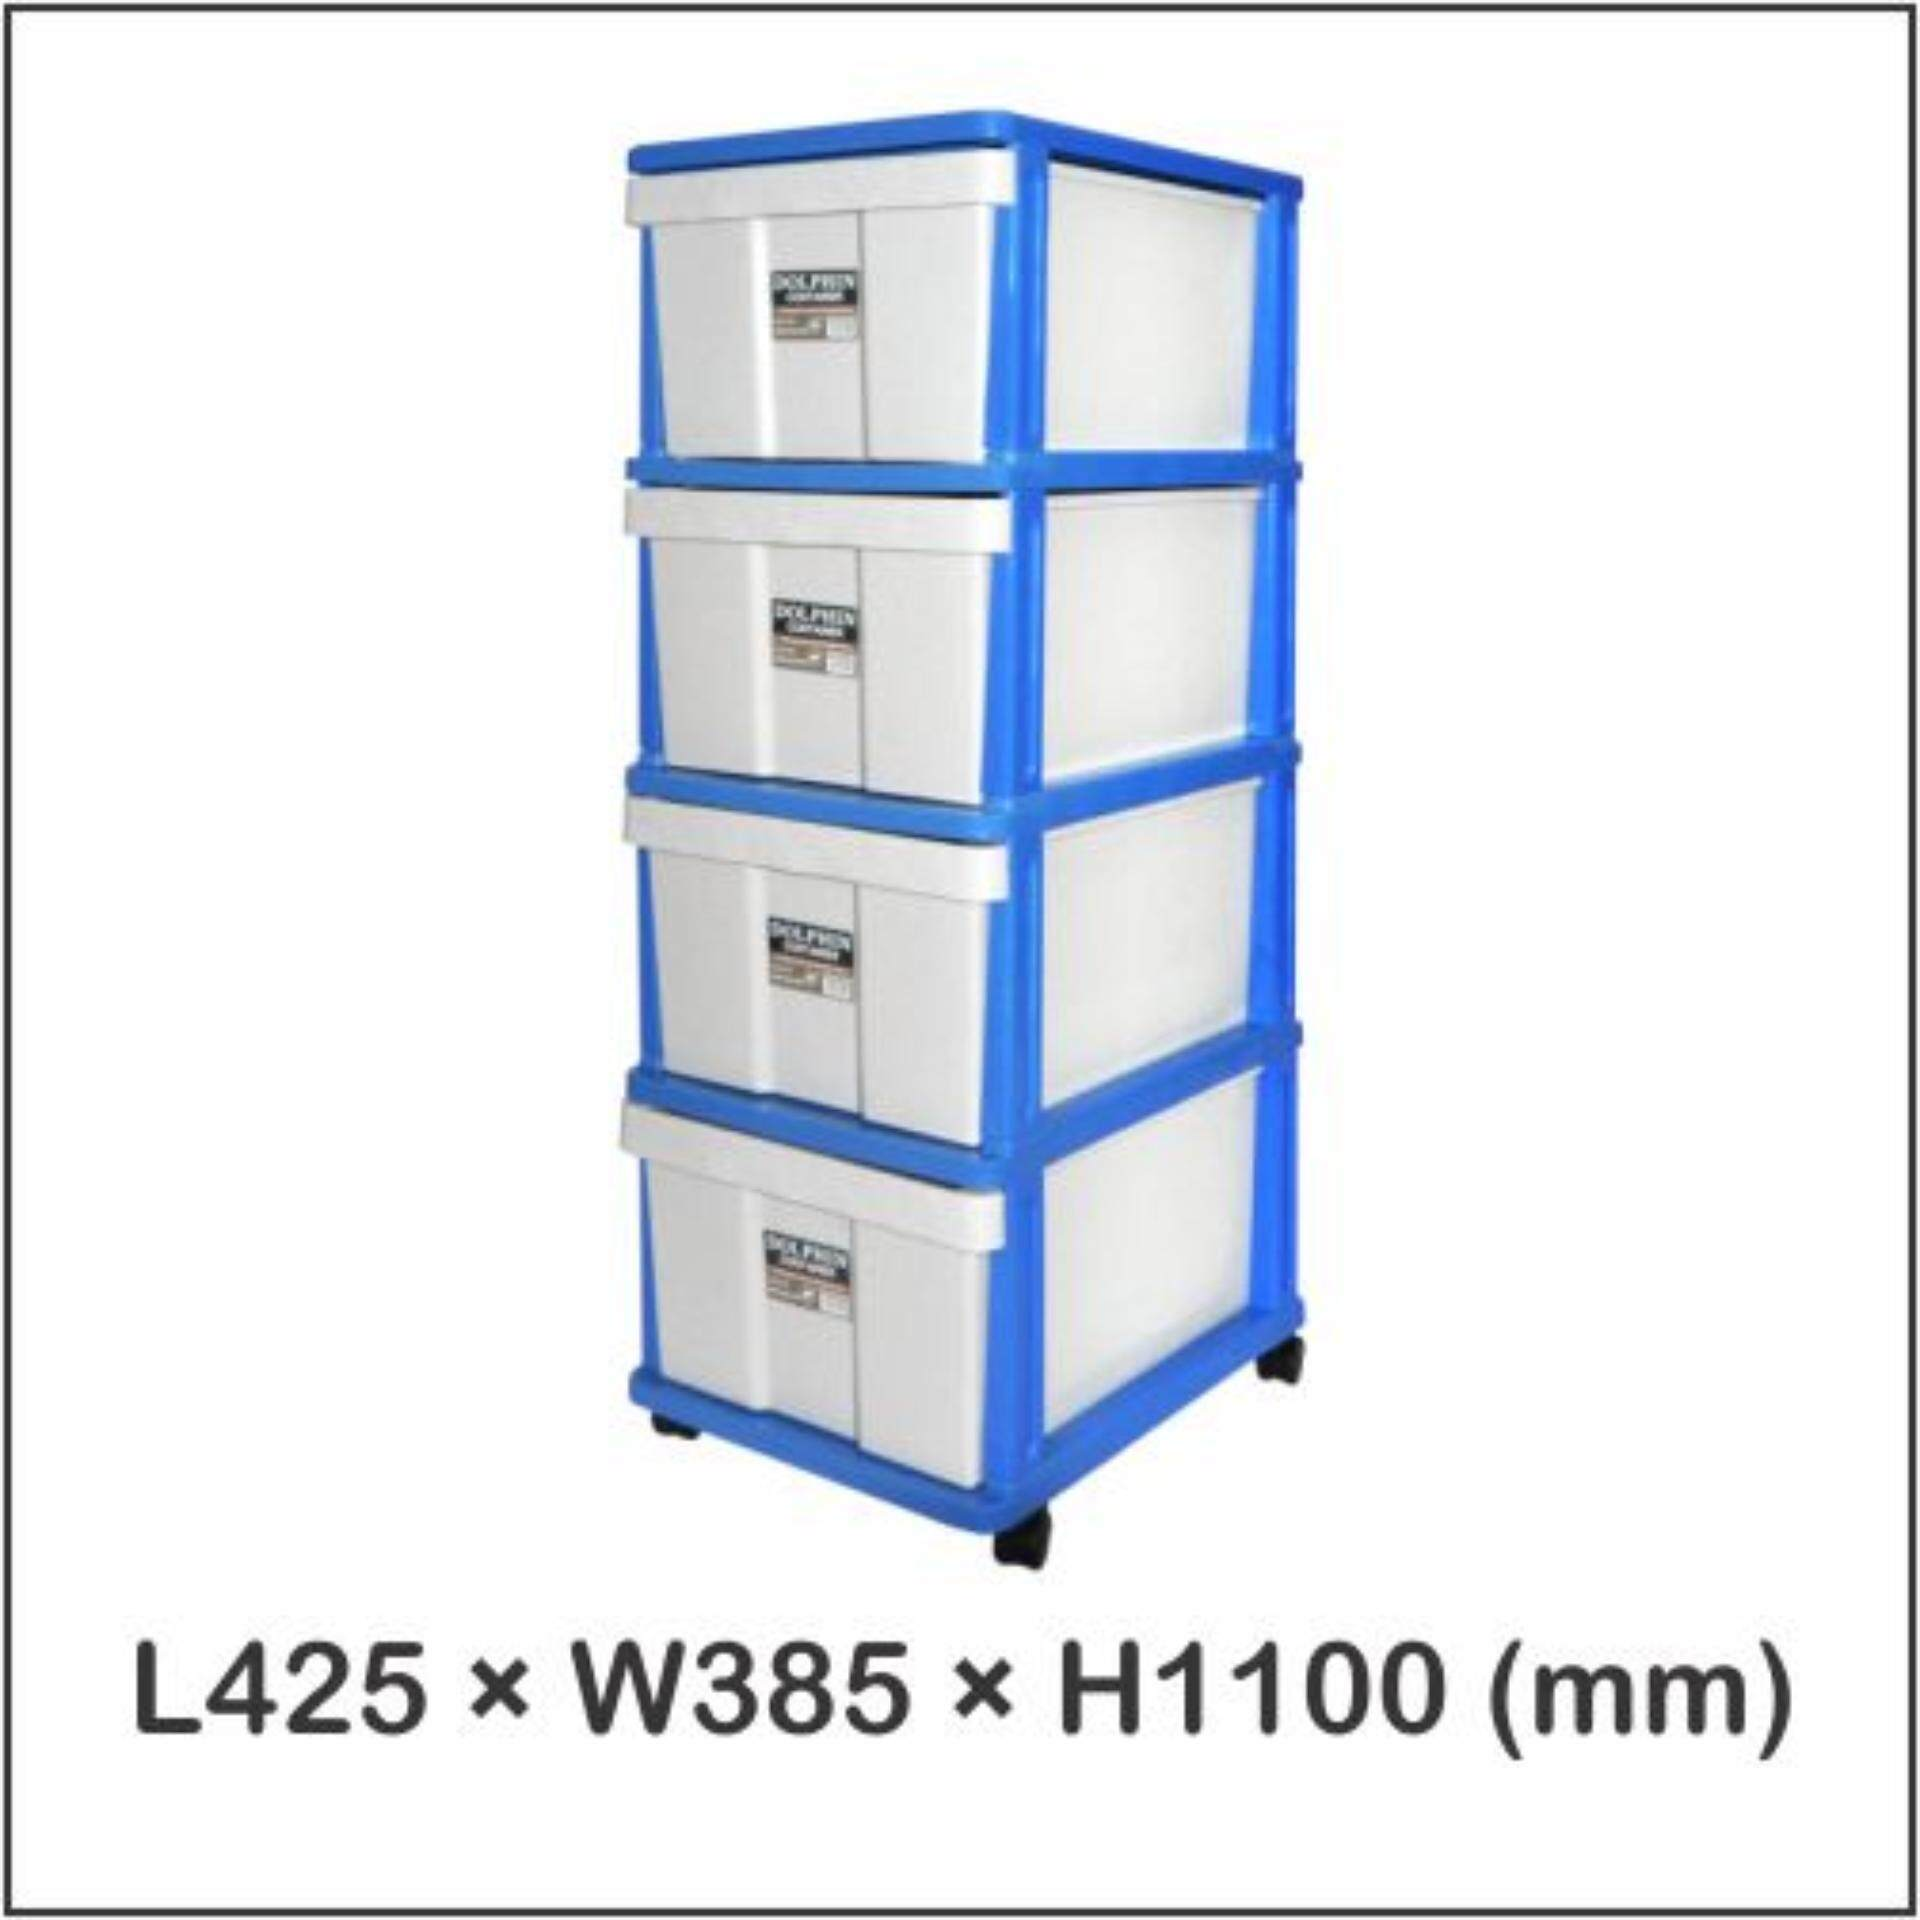 plastic small chest box stunning stackable mudroom skinny drawers cabinet container with drawer bins storage